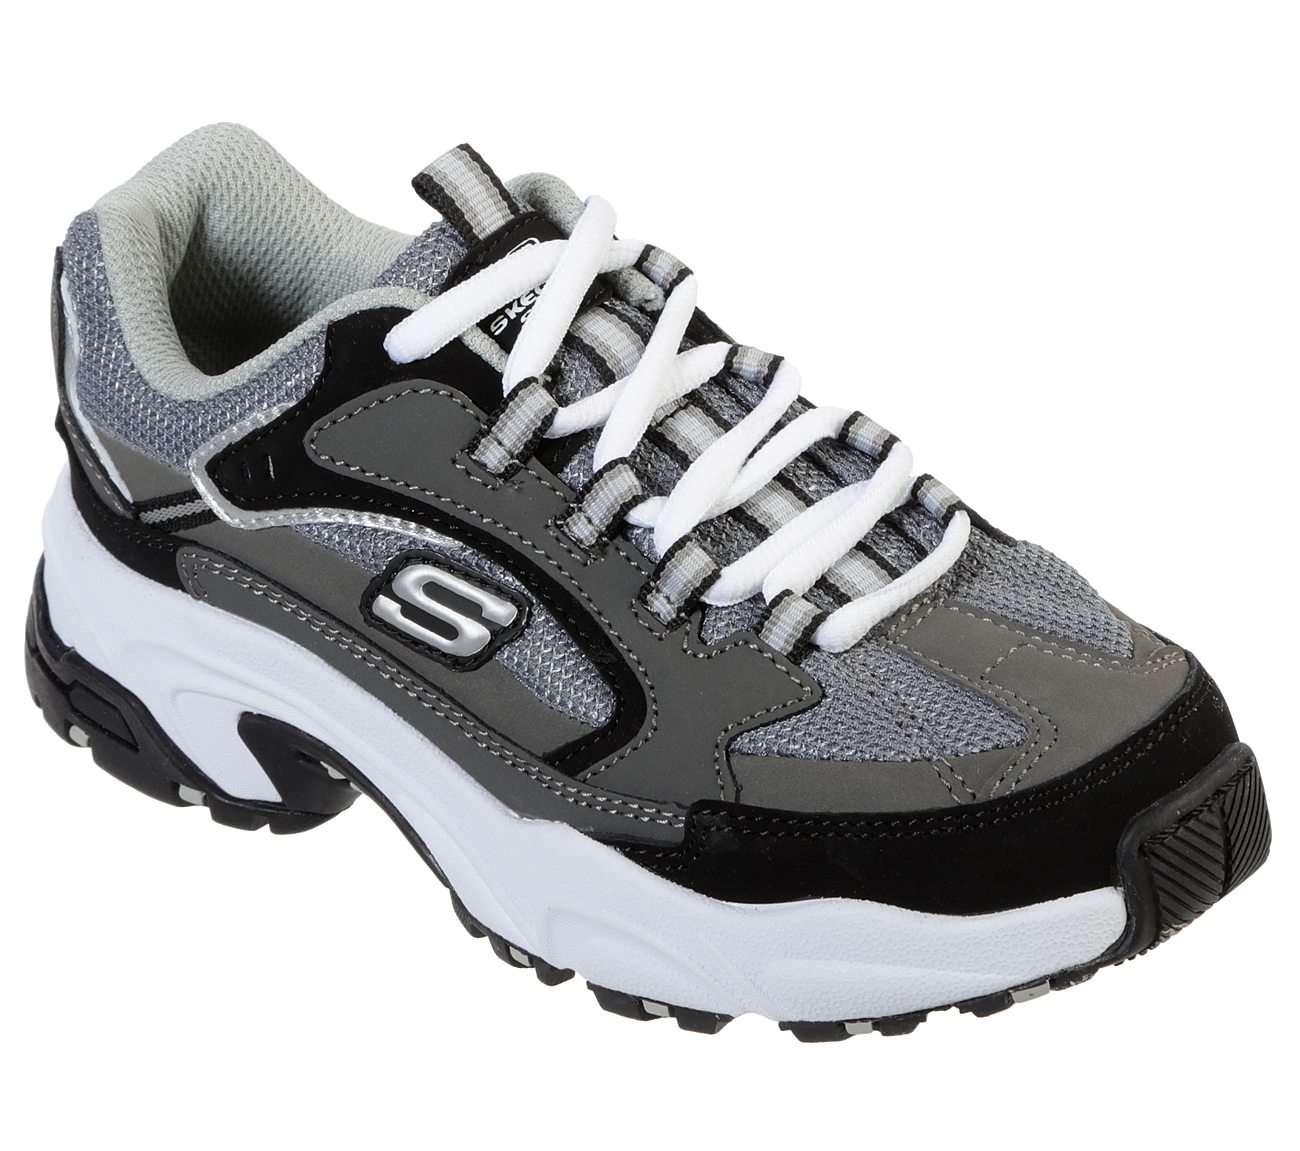 Moretón incompleto Pantalones  Buy SKECHERS Stamina - Cutback Heritage Shoes